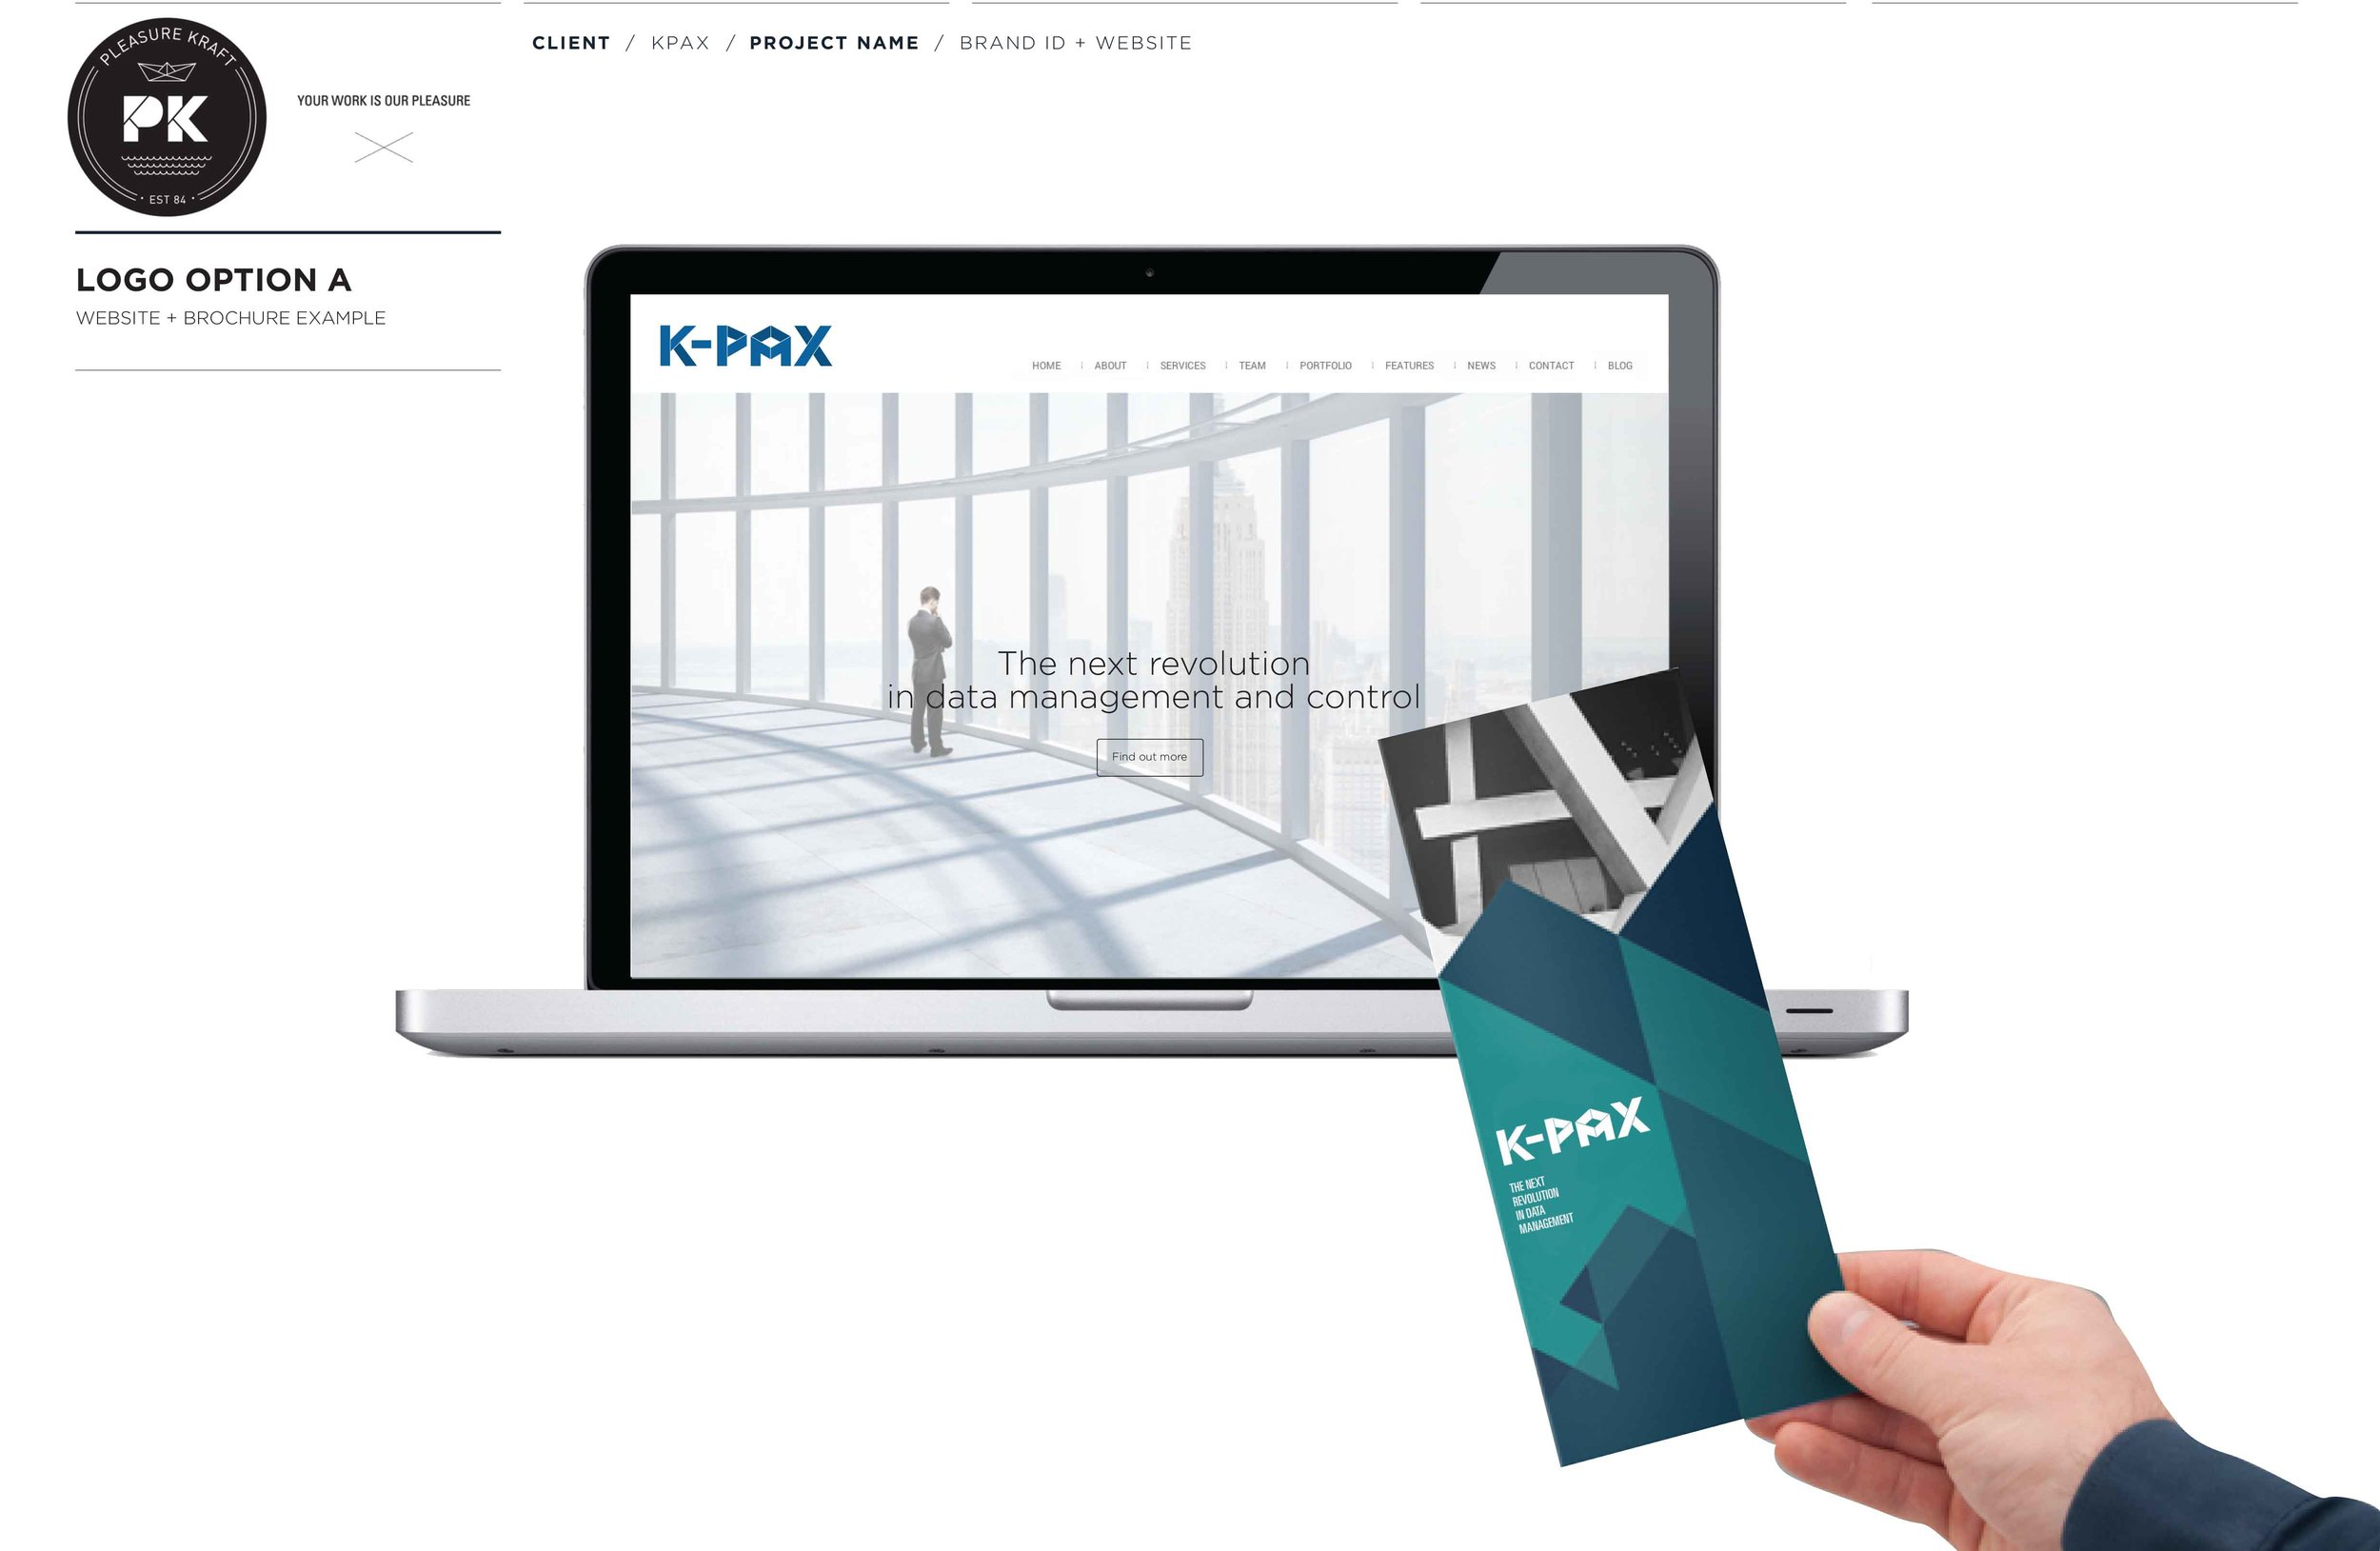 KPAX LOGO+GRAPHIC CONCEPTS PRES-3 copy.jpg